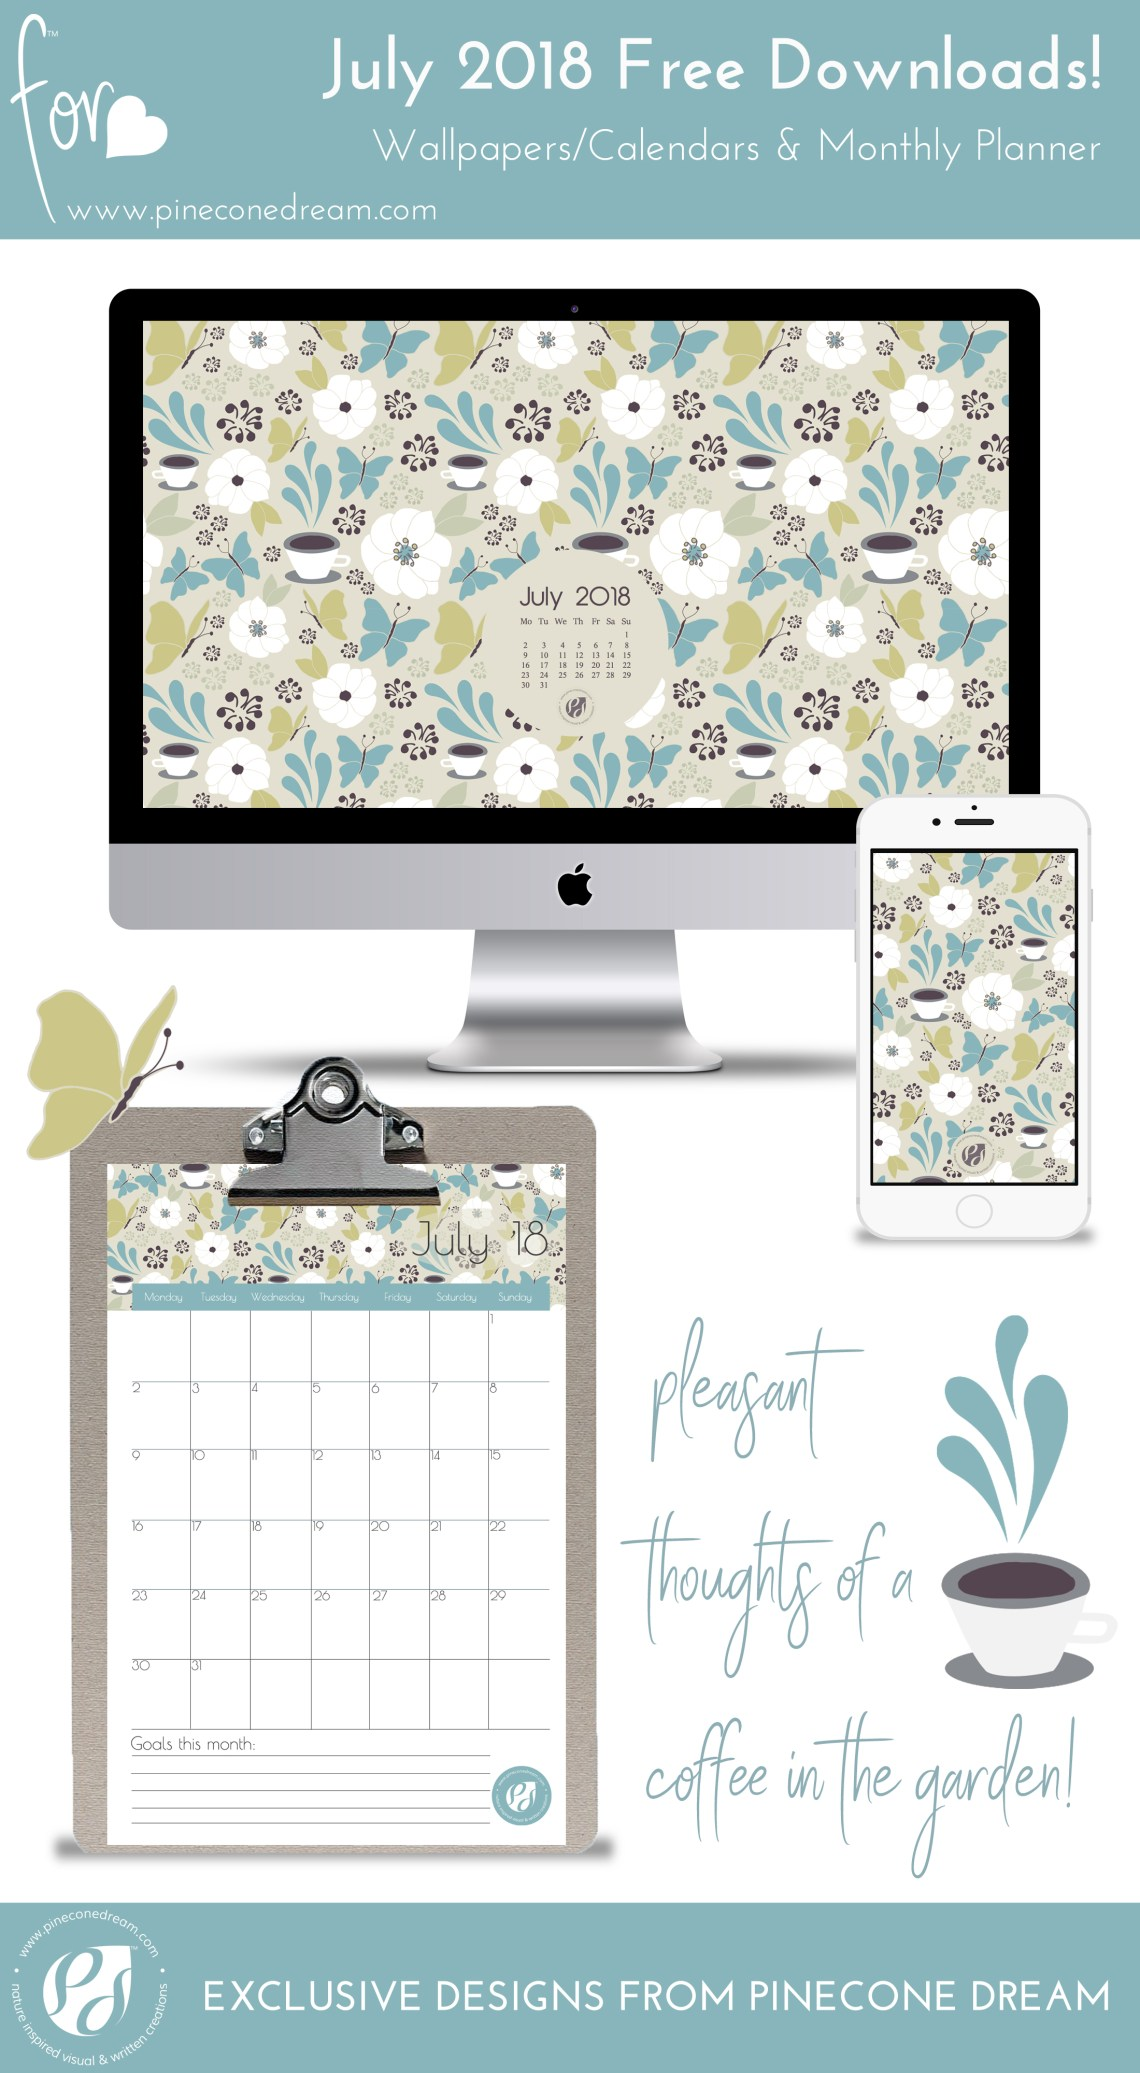 Wallpapers&Calendars_July2018_Pineconedream7